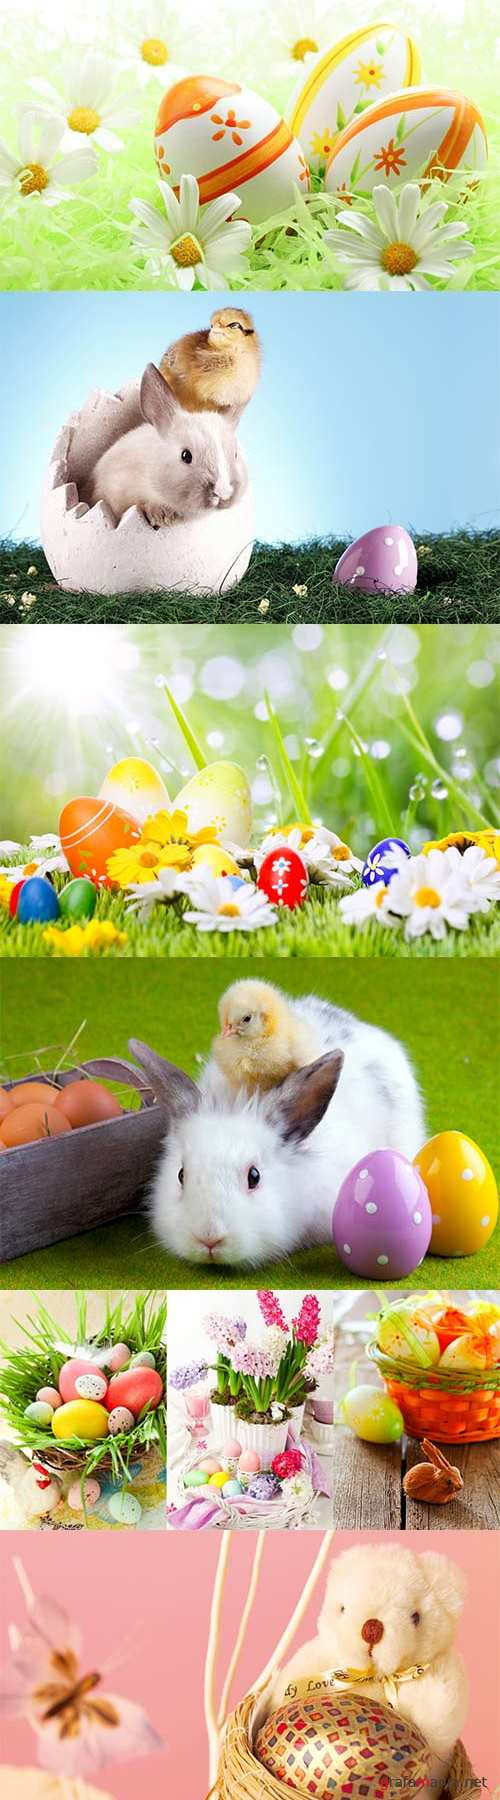 Happy Easter - 5